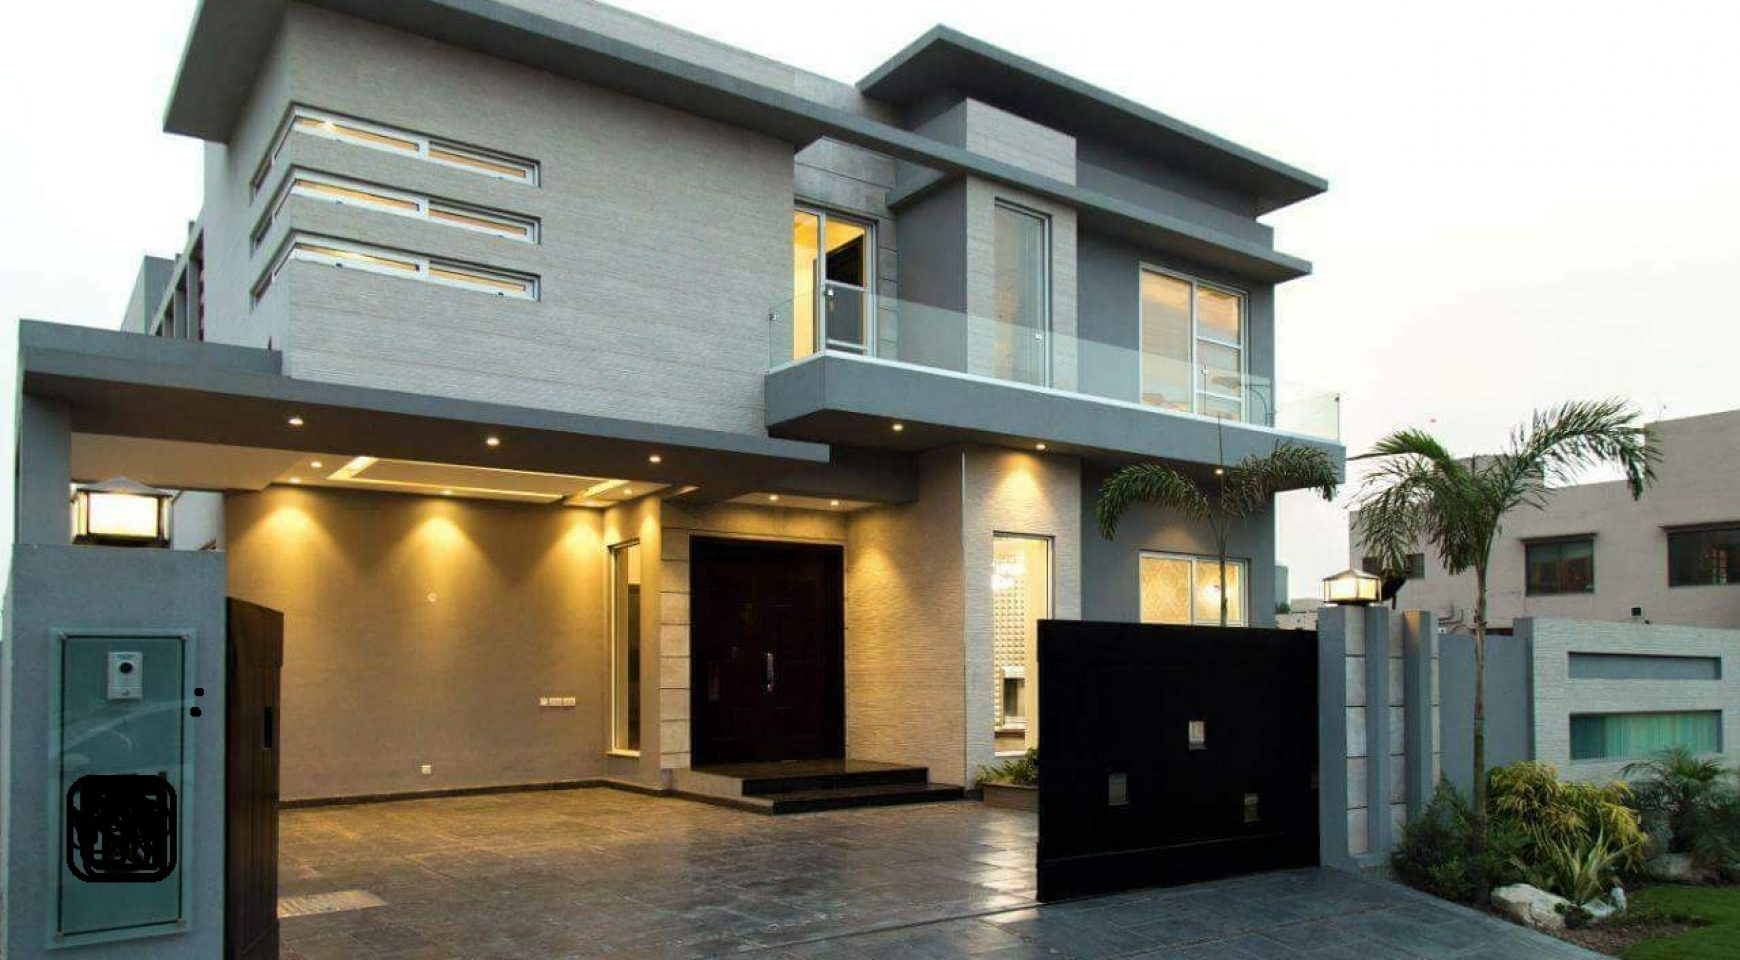 HOT OPTION FULL HOUSE FOR RENT IS AVAILABLE IN NISHTER BLOCK